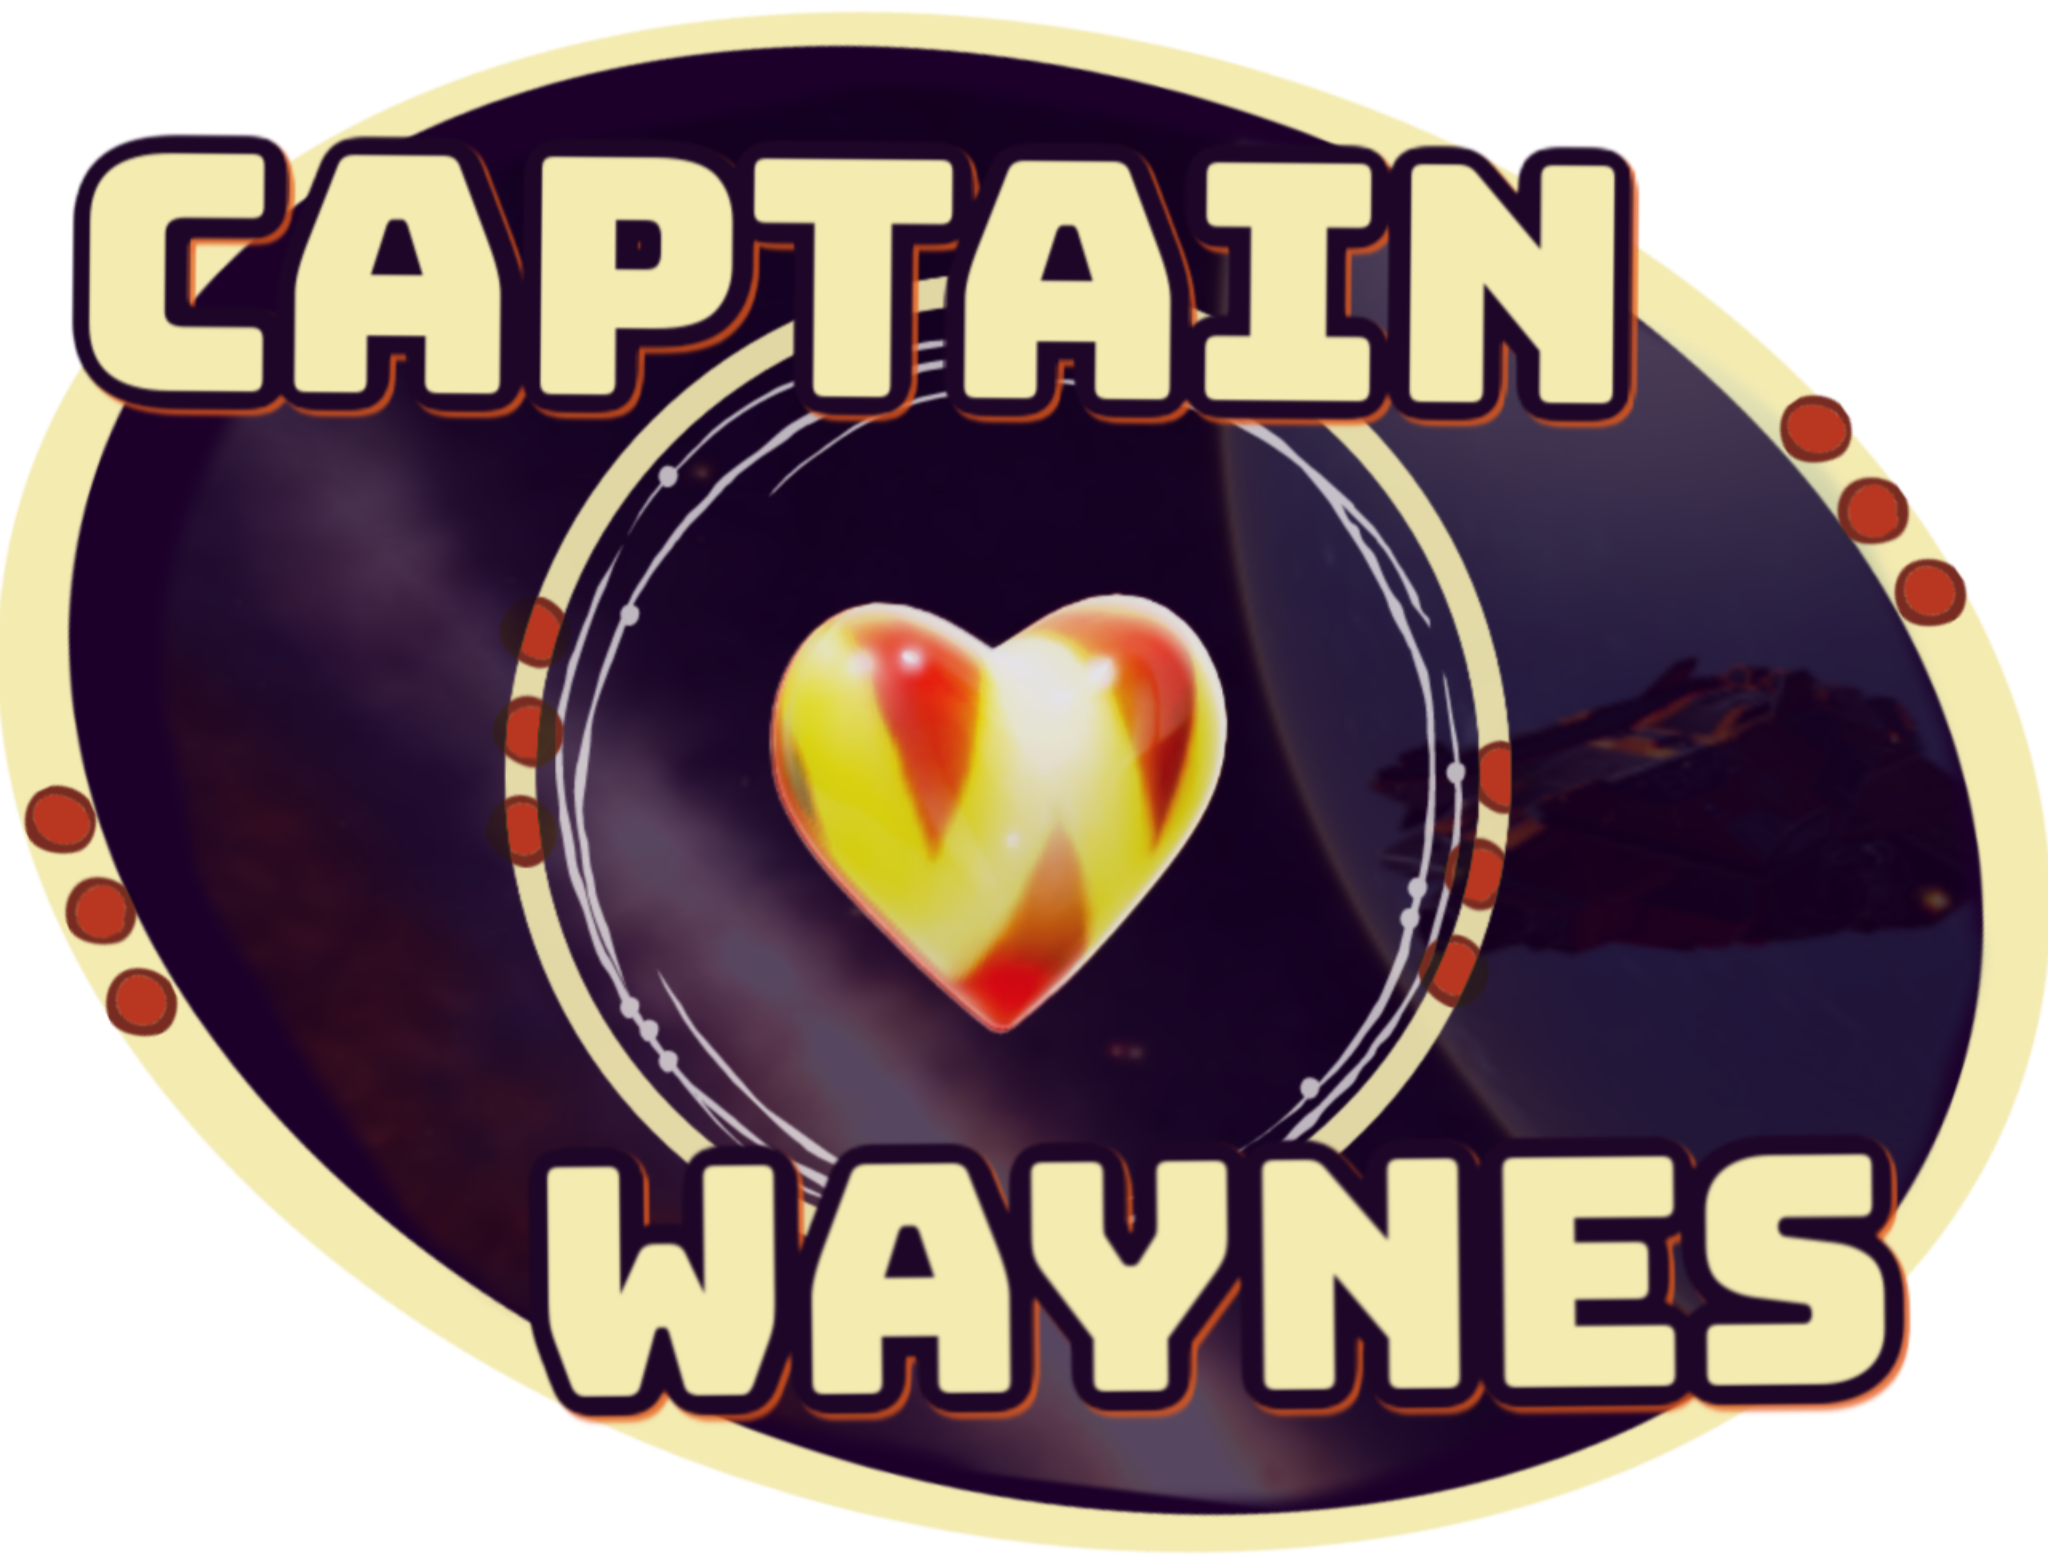 Captain Waynes